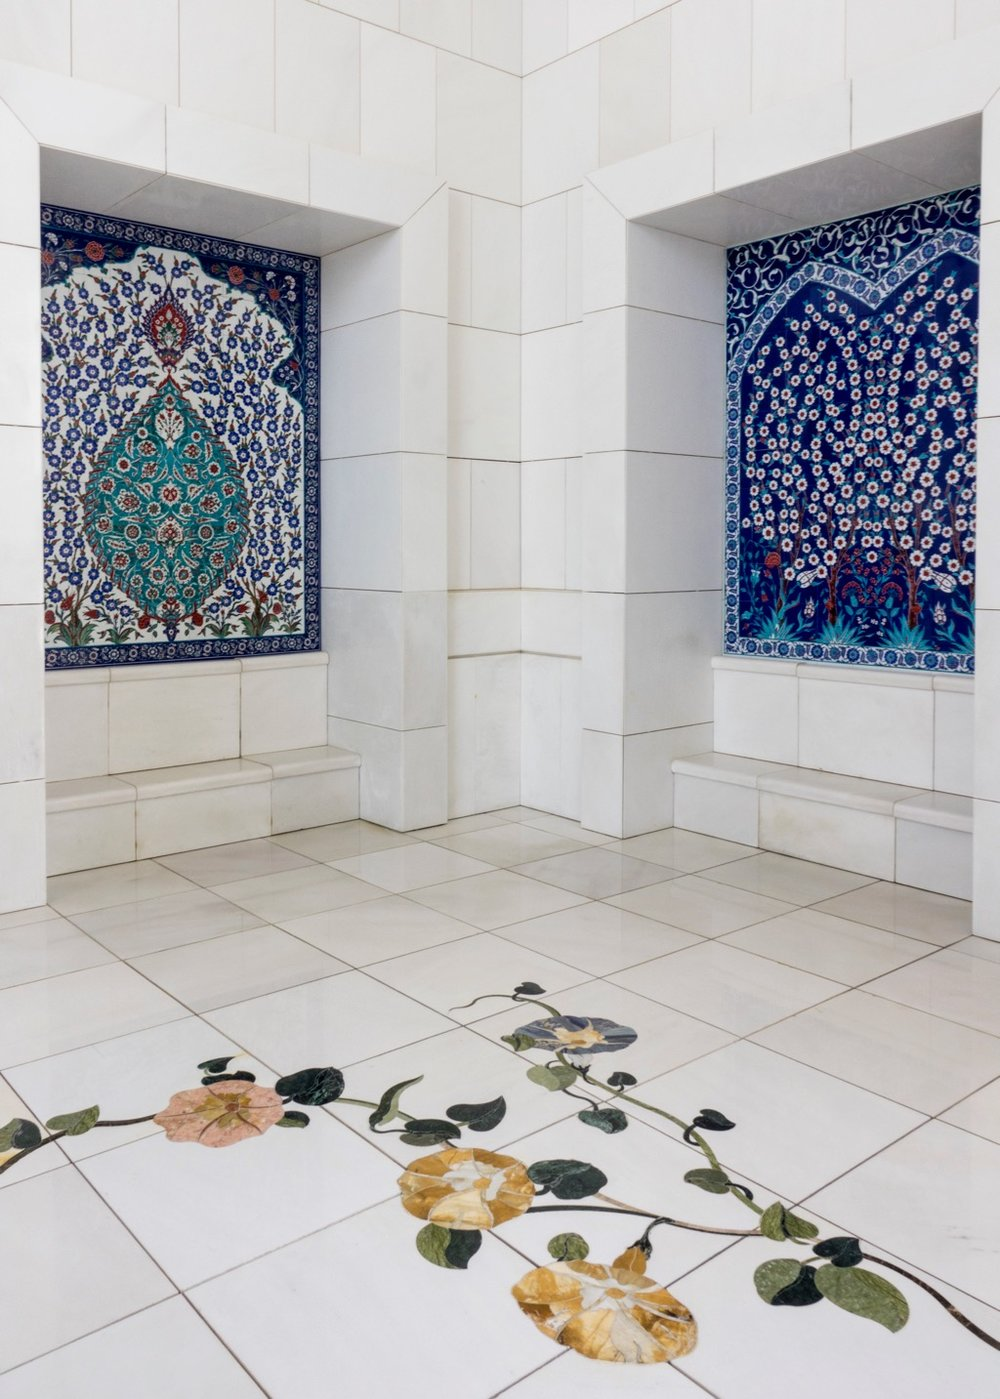 In many places throughout the mosque, there were mosaic works for decoration.